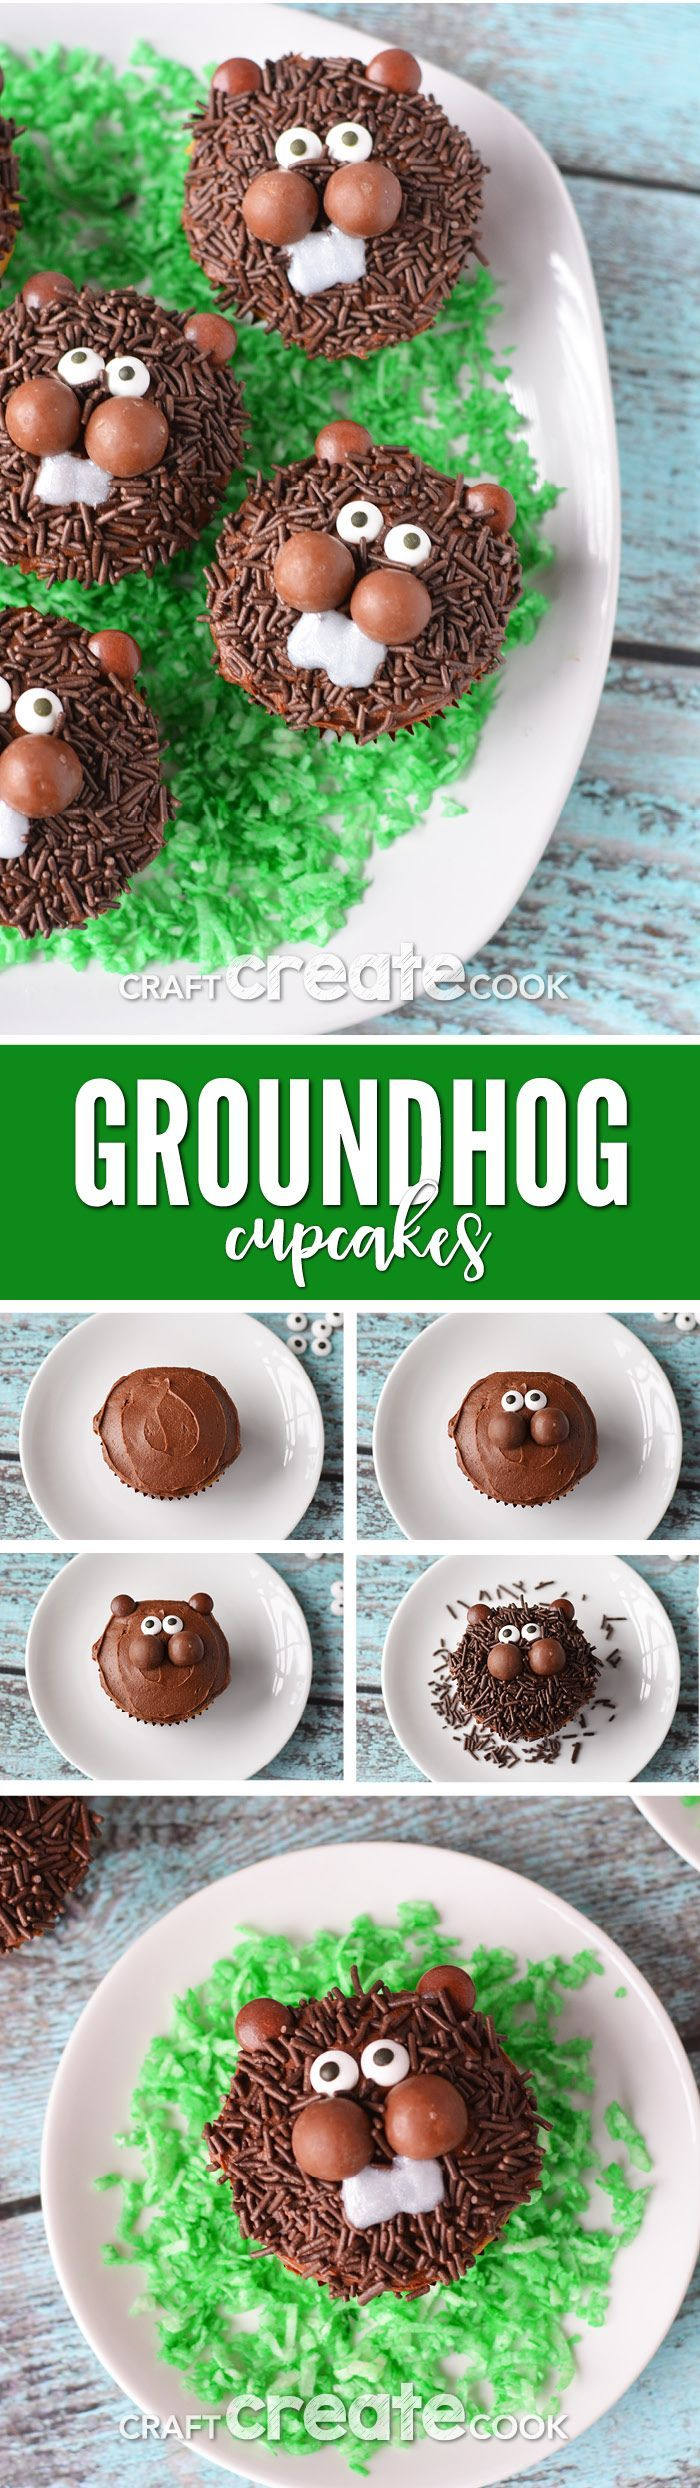 No matter what the prediction, these Groundhog Day Cupcakes will bring a smile to your family!  via @CraftCreatCook1